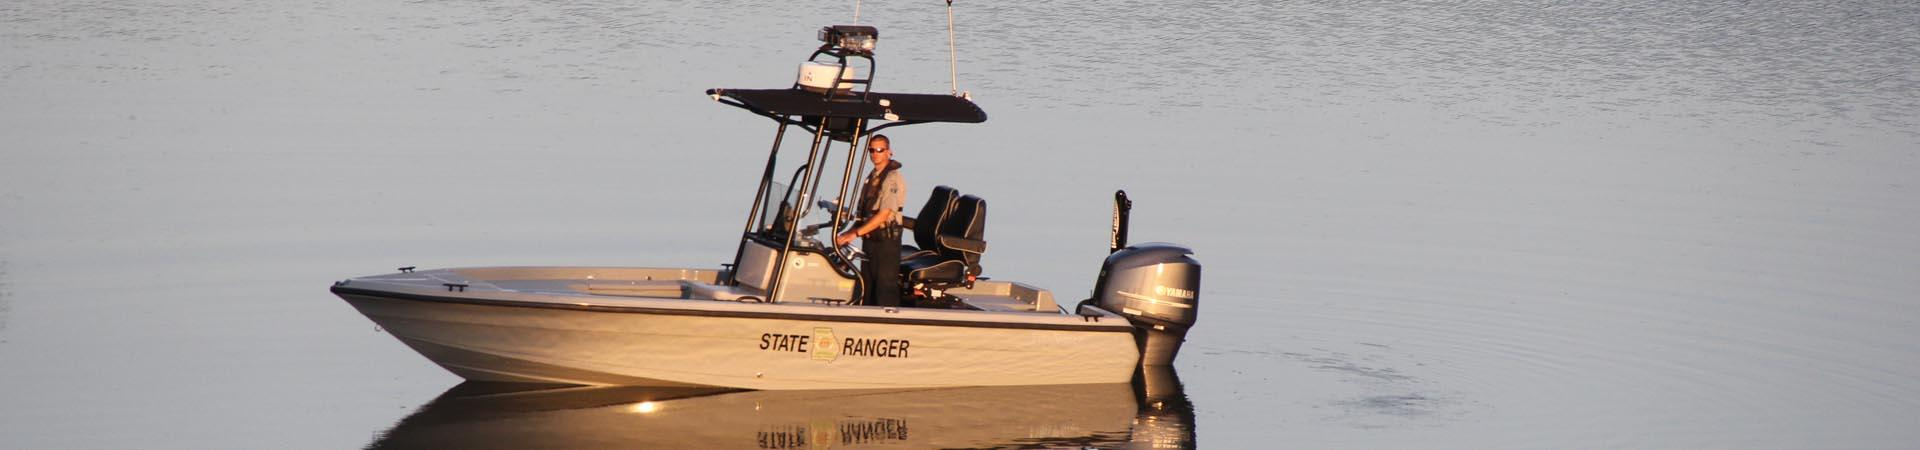 Boat patrol on Georgia waterways